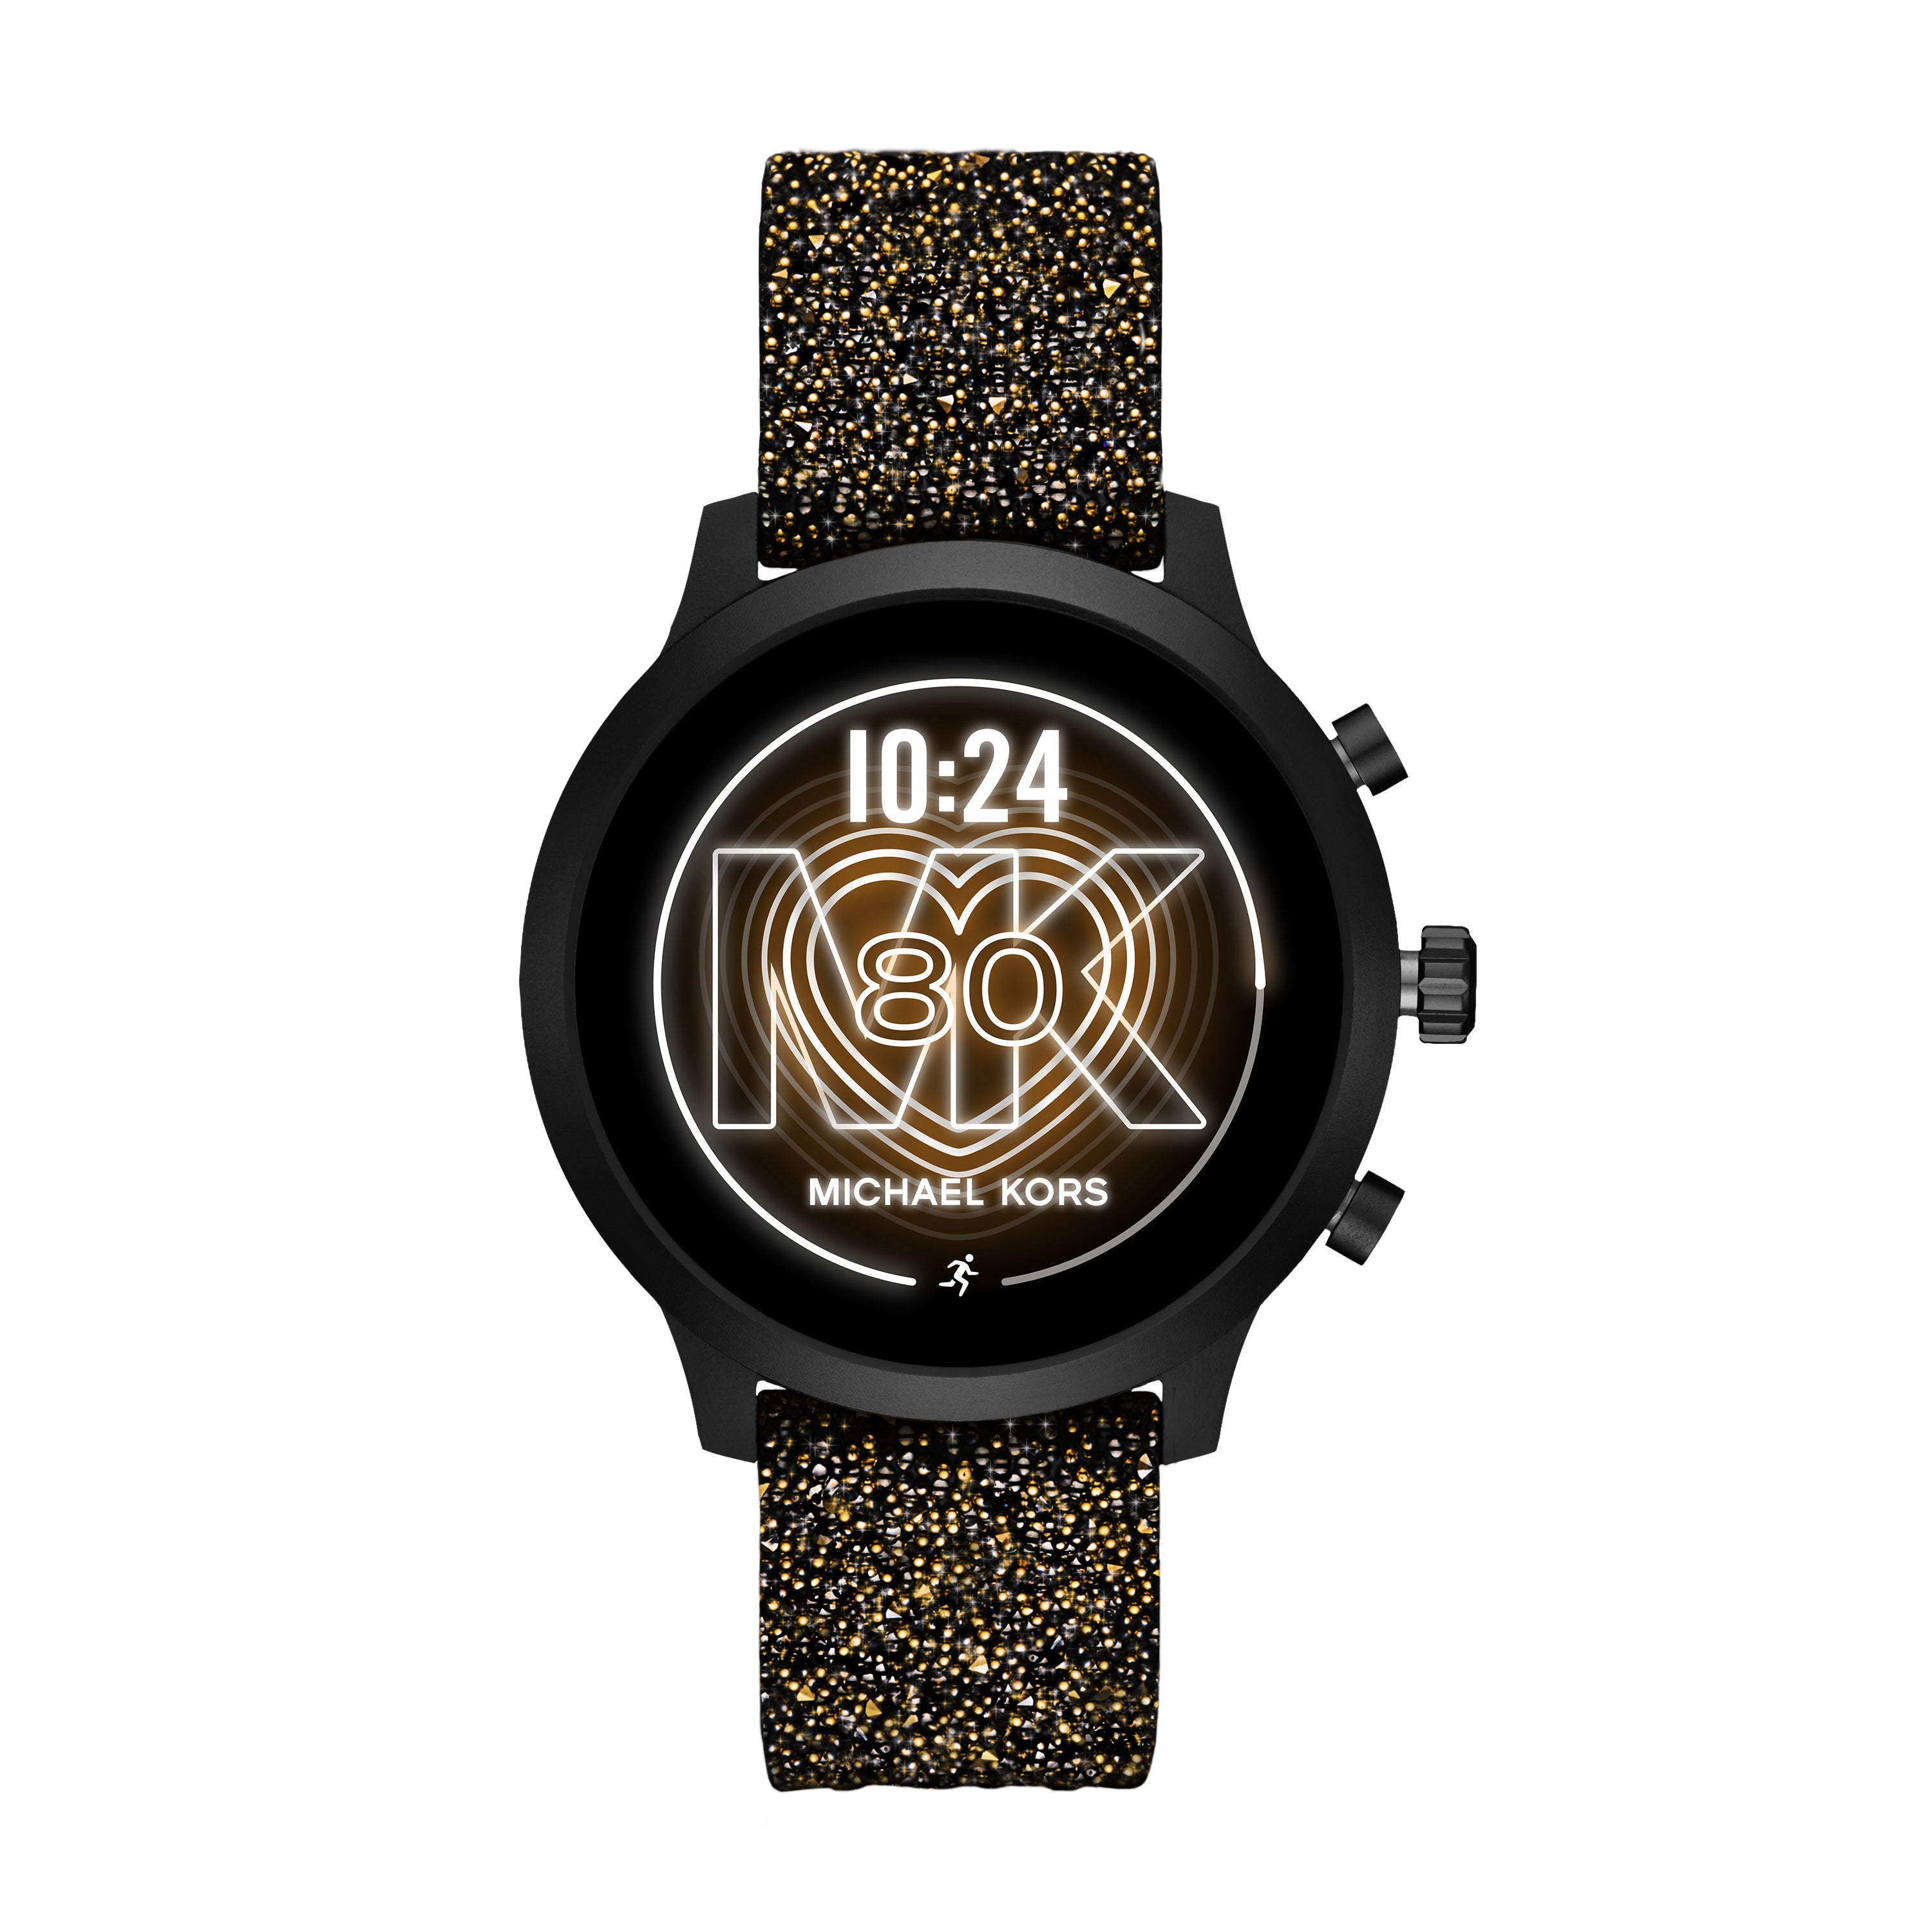 Michael Kors Access Gen 4 MKGO Black-Tone Embellished Silicone Smartwatch